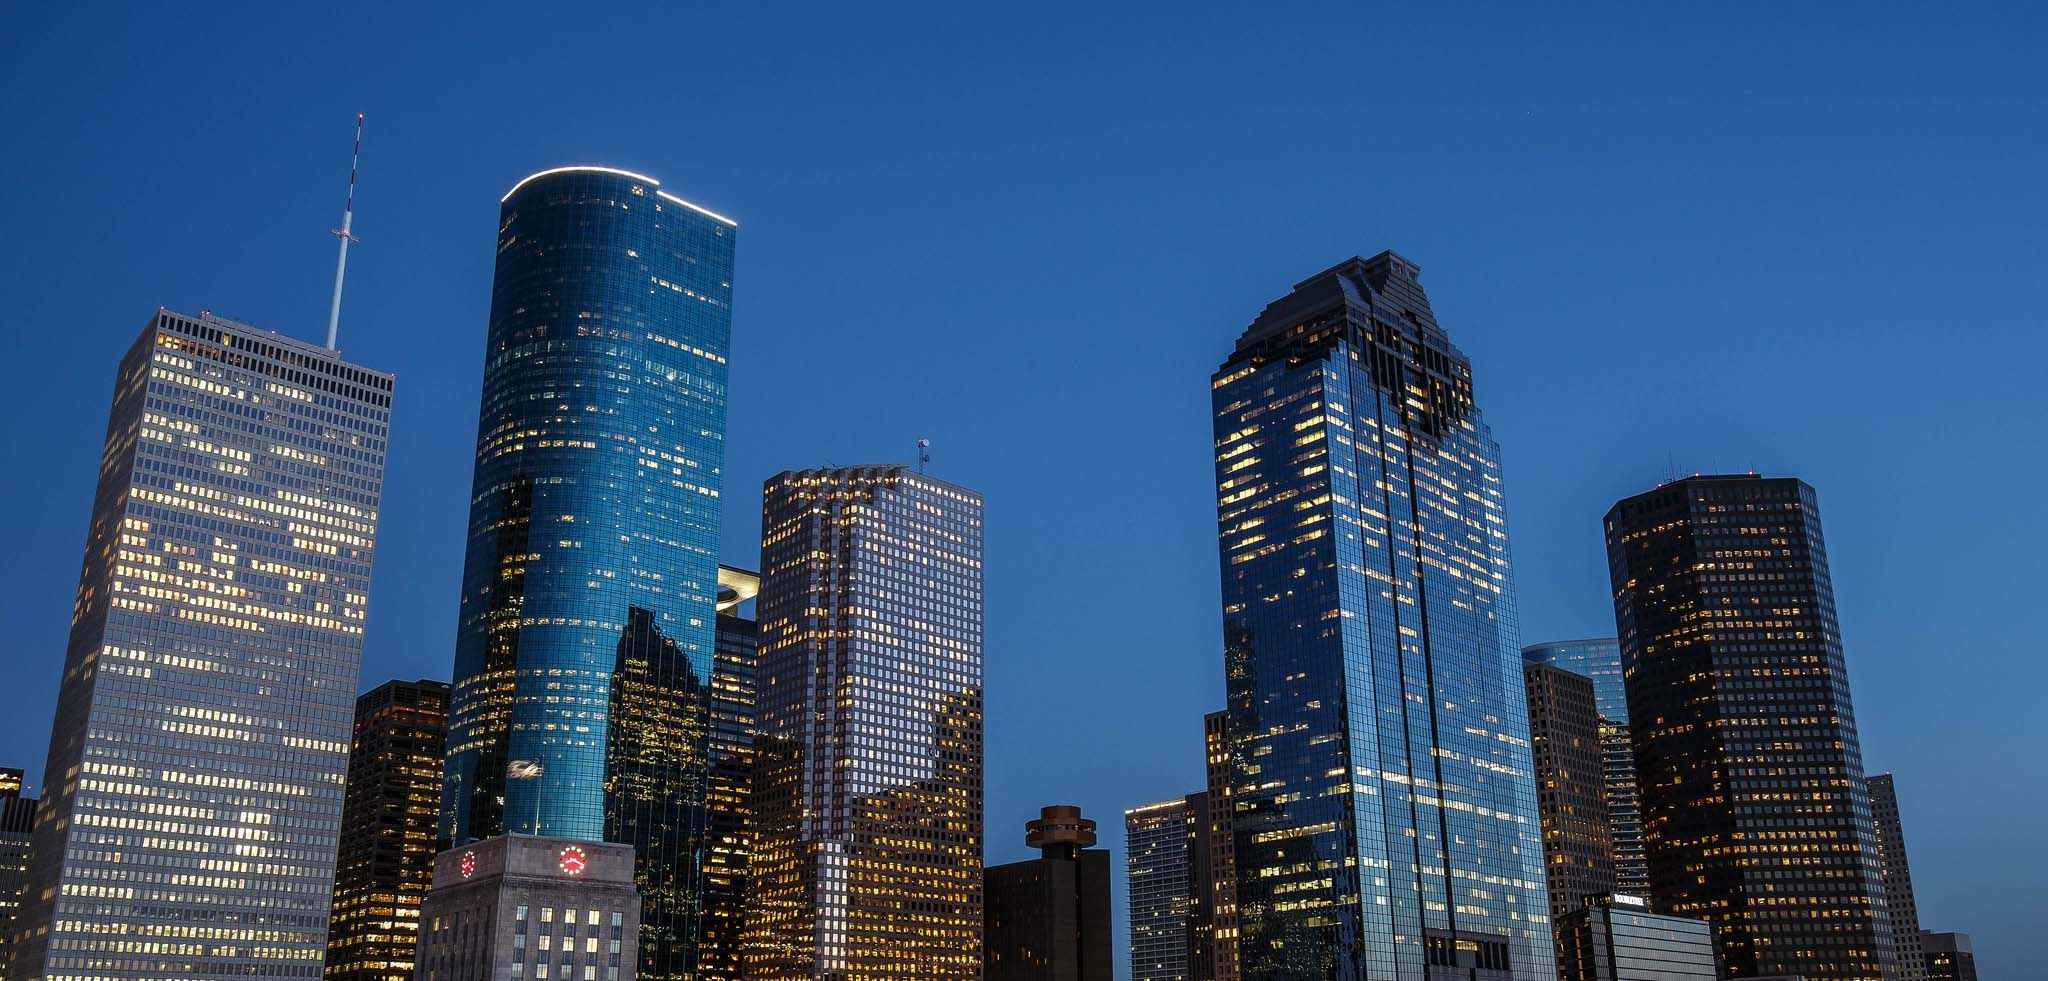 Recurrent is a Houston-based investment firm focused on opportunities created by energy cycles.